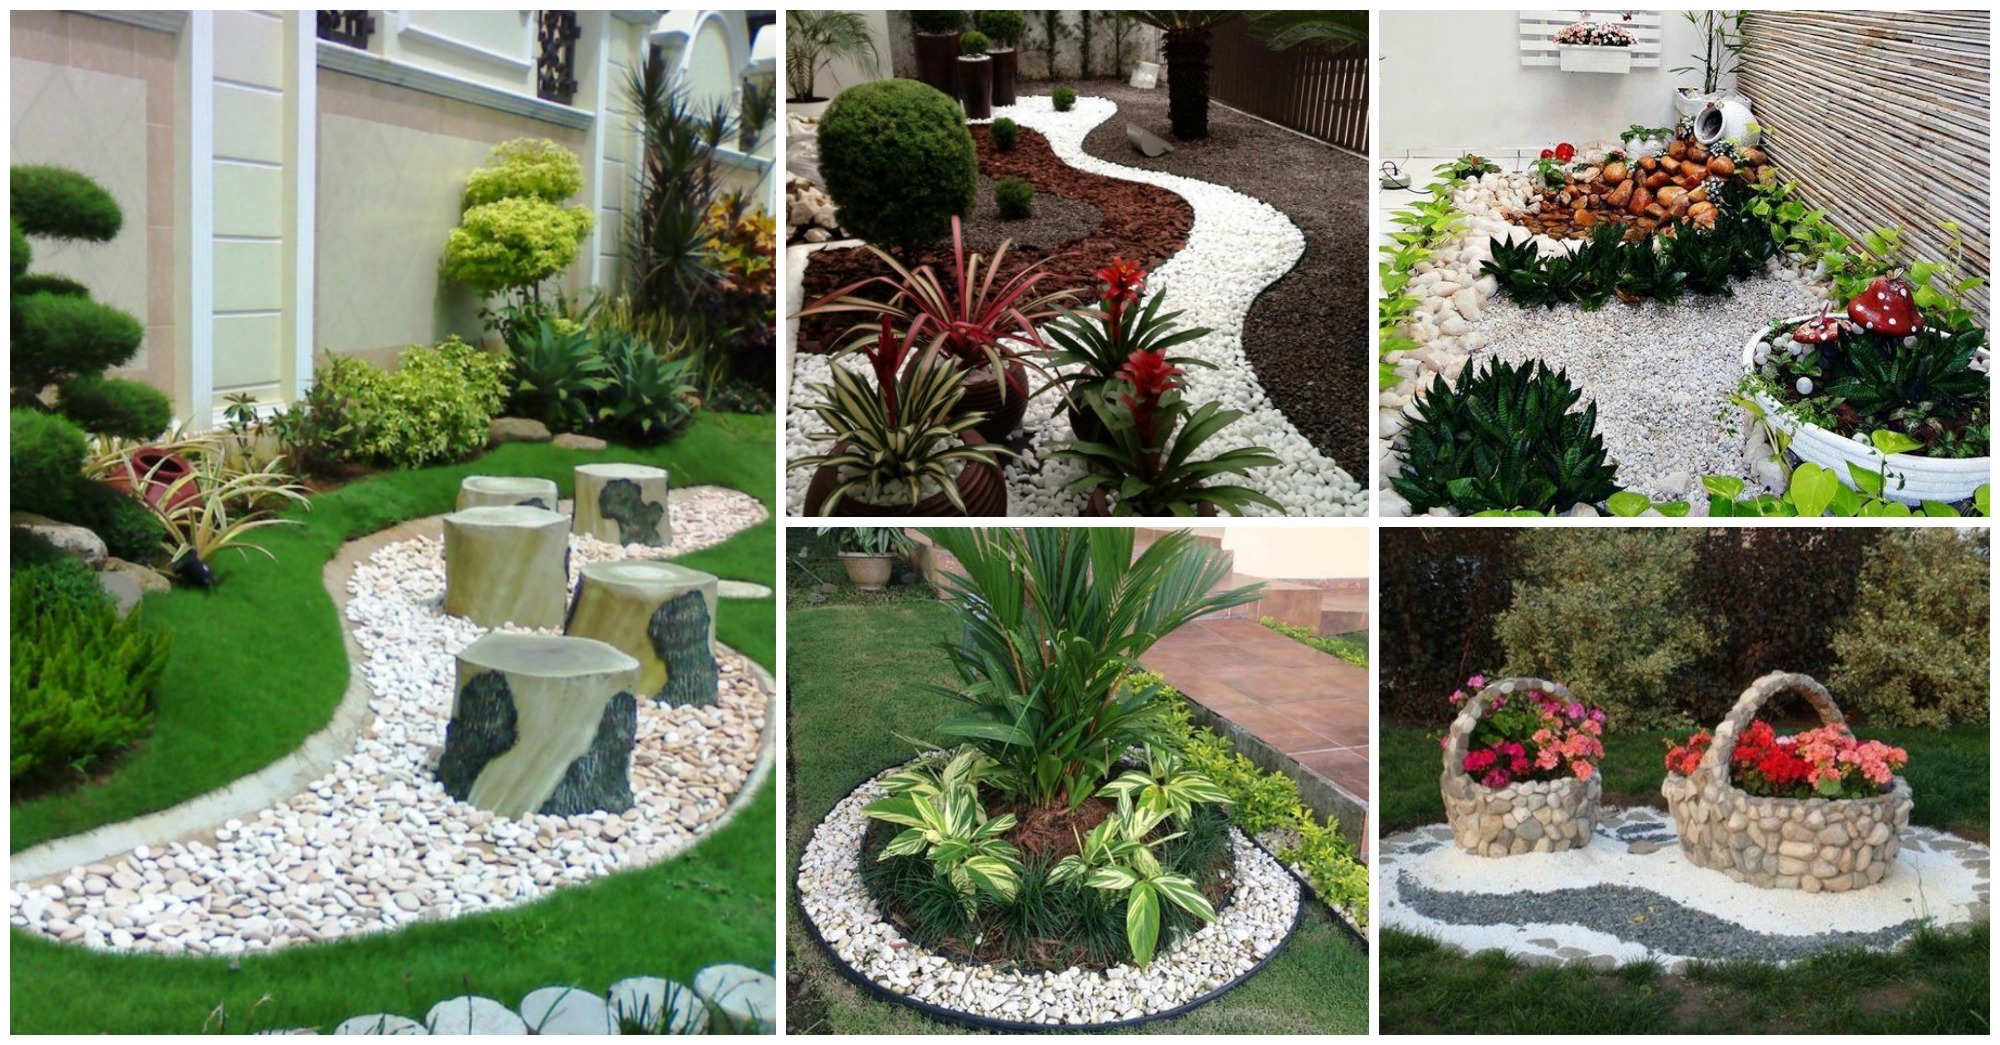 12 fant sticas ideas para dise ar un jard n con piedras for Ideas decoracion jardin